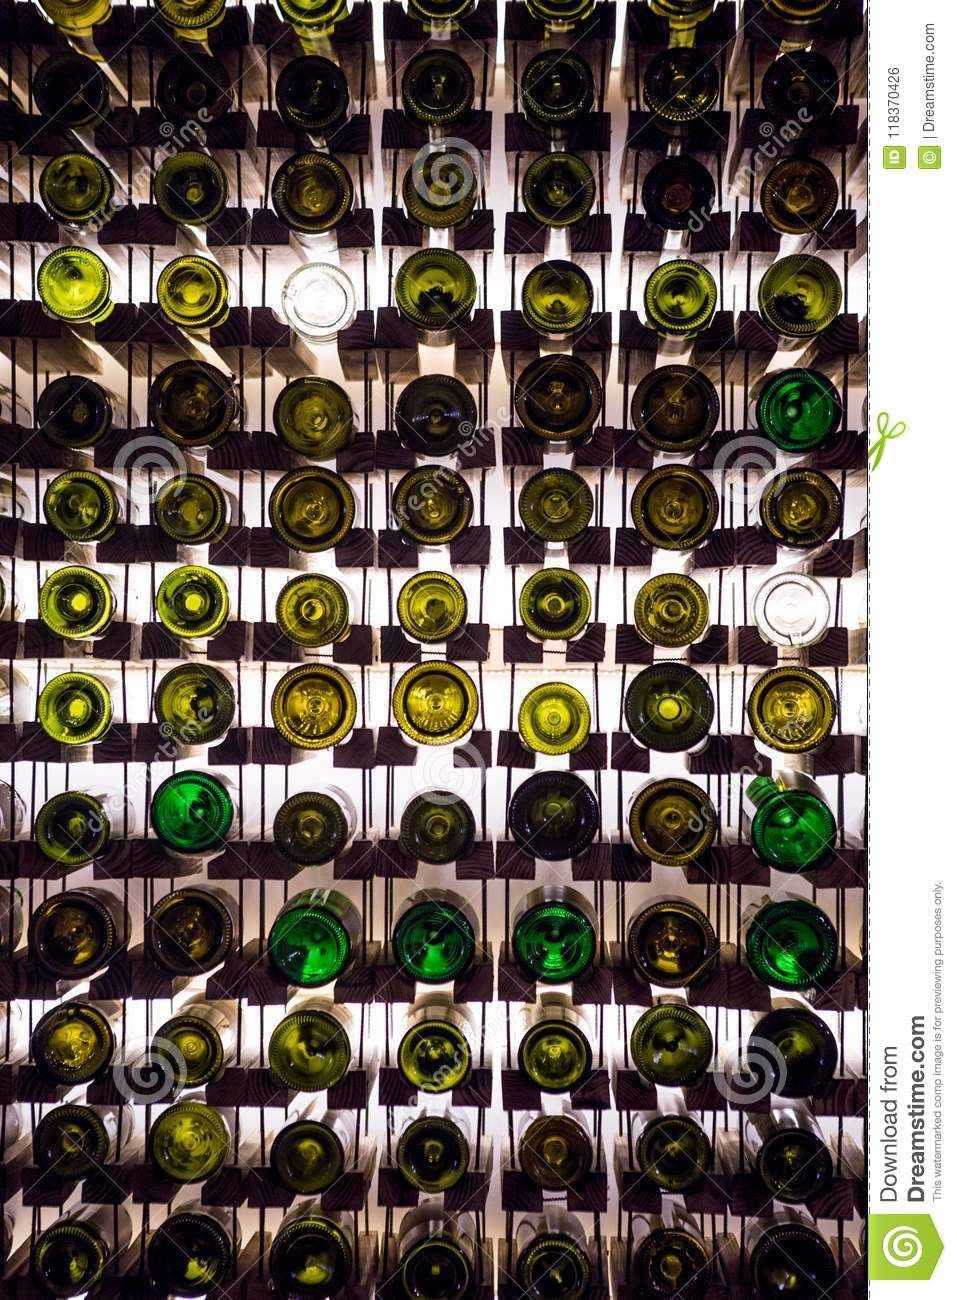 Wall of empty wine bottles. Empty wine bottles stacked-up on one another in pattern lit by the light coming from behind